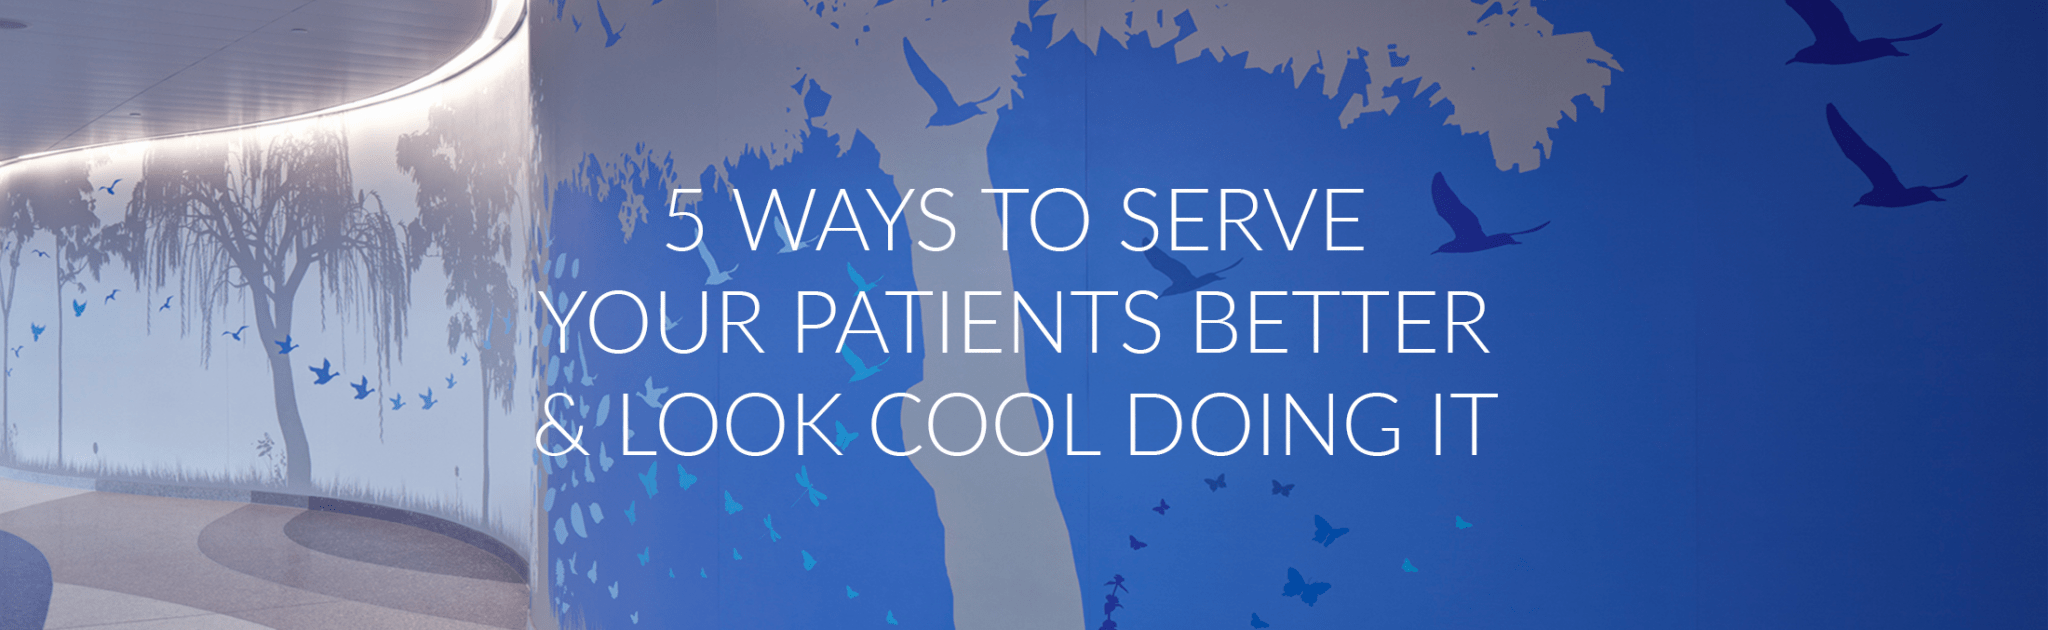 5 ways to serve your patients better banner